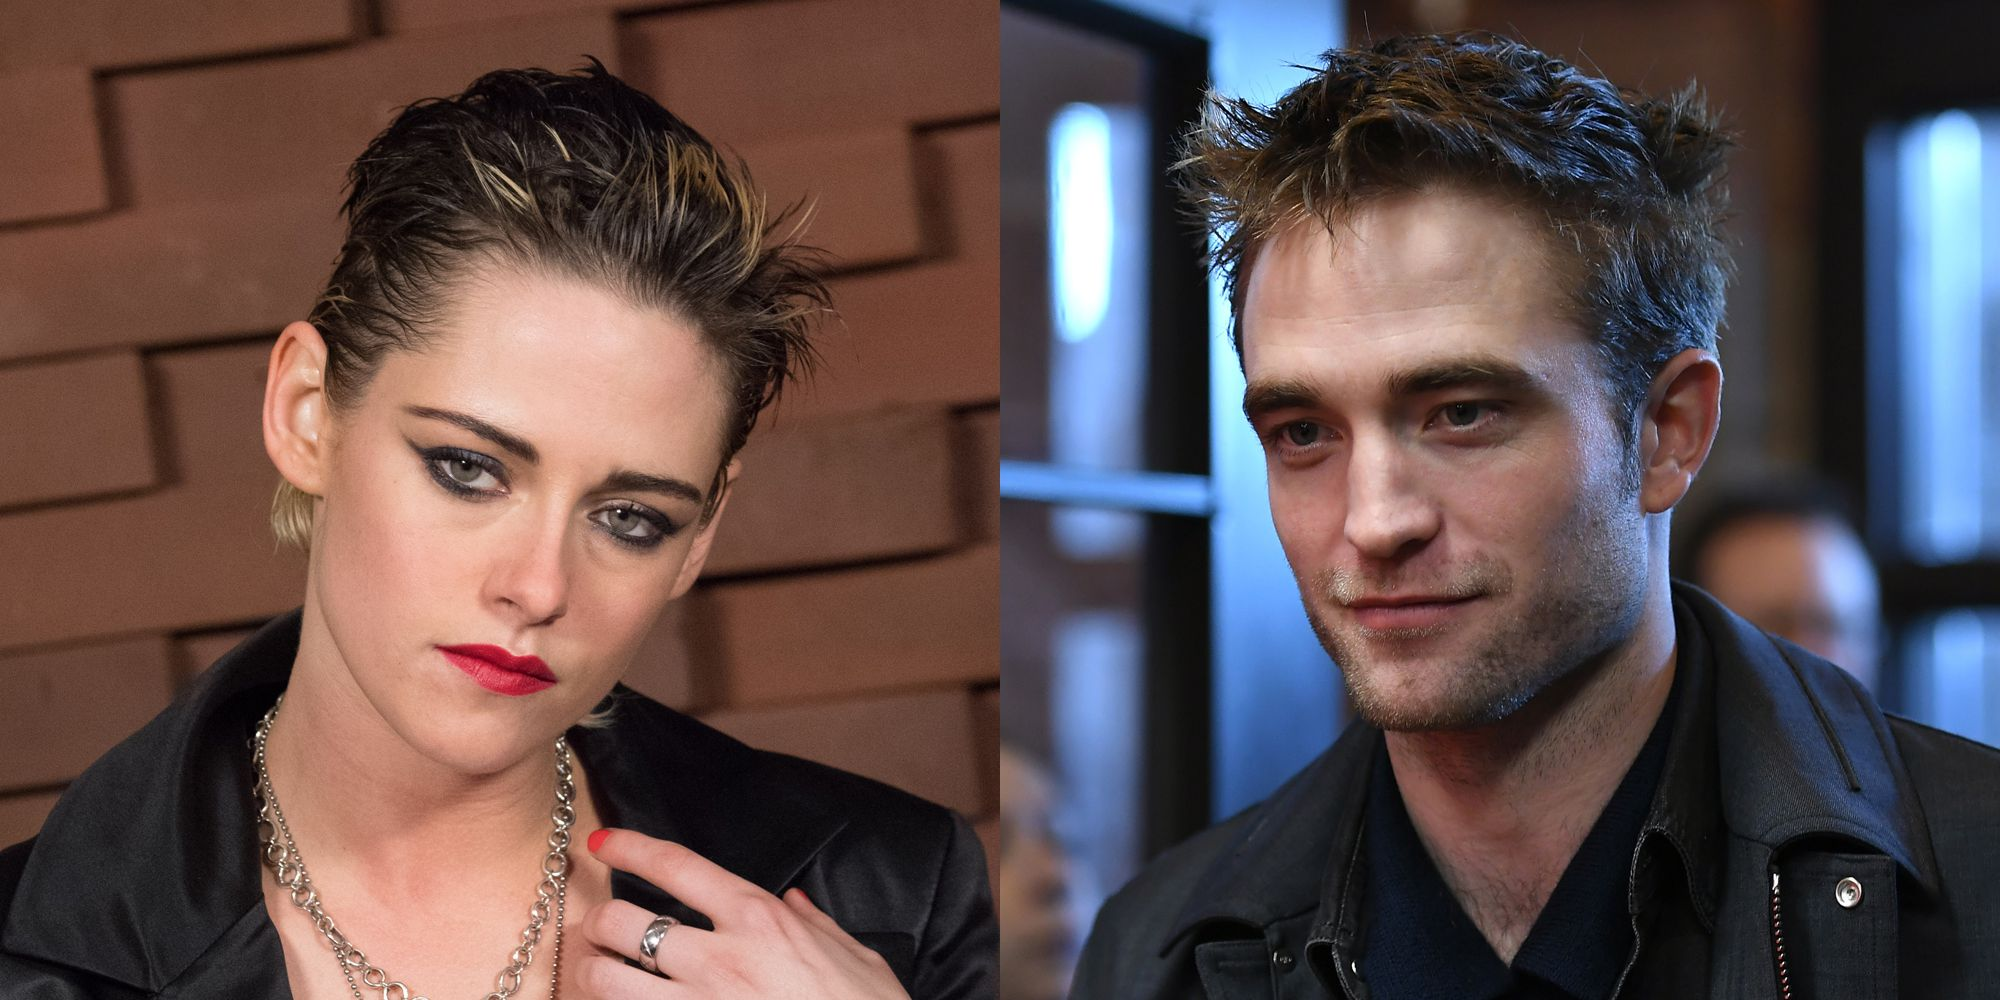 """kristen-stewart-fans-insist-she-plays-catwoman-after-reports-that-rob-pattinson-is-the-next-batman"""